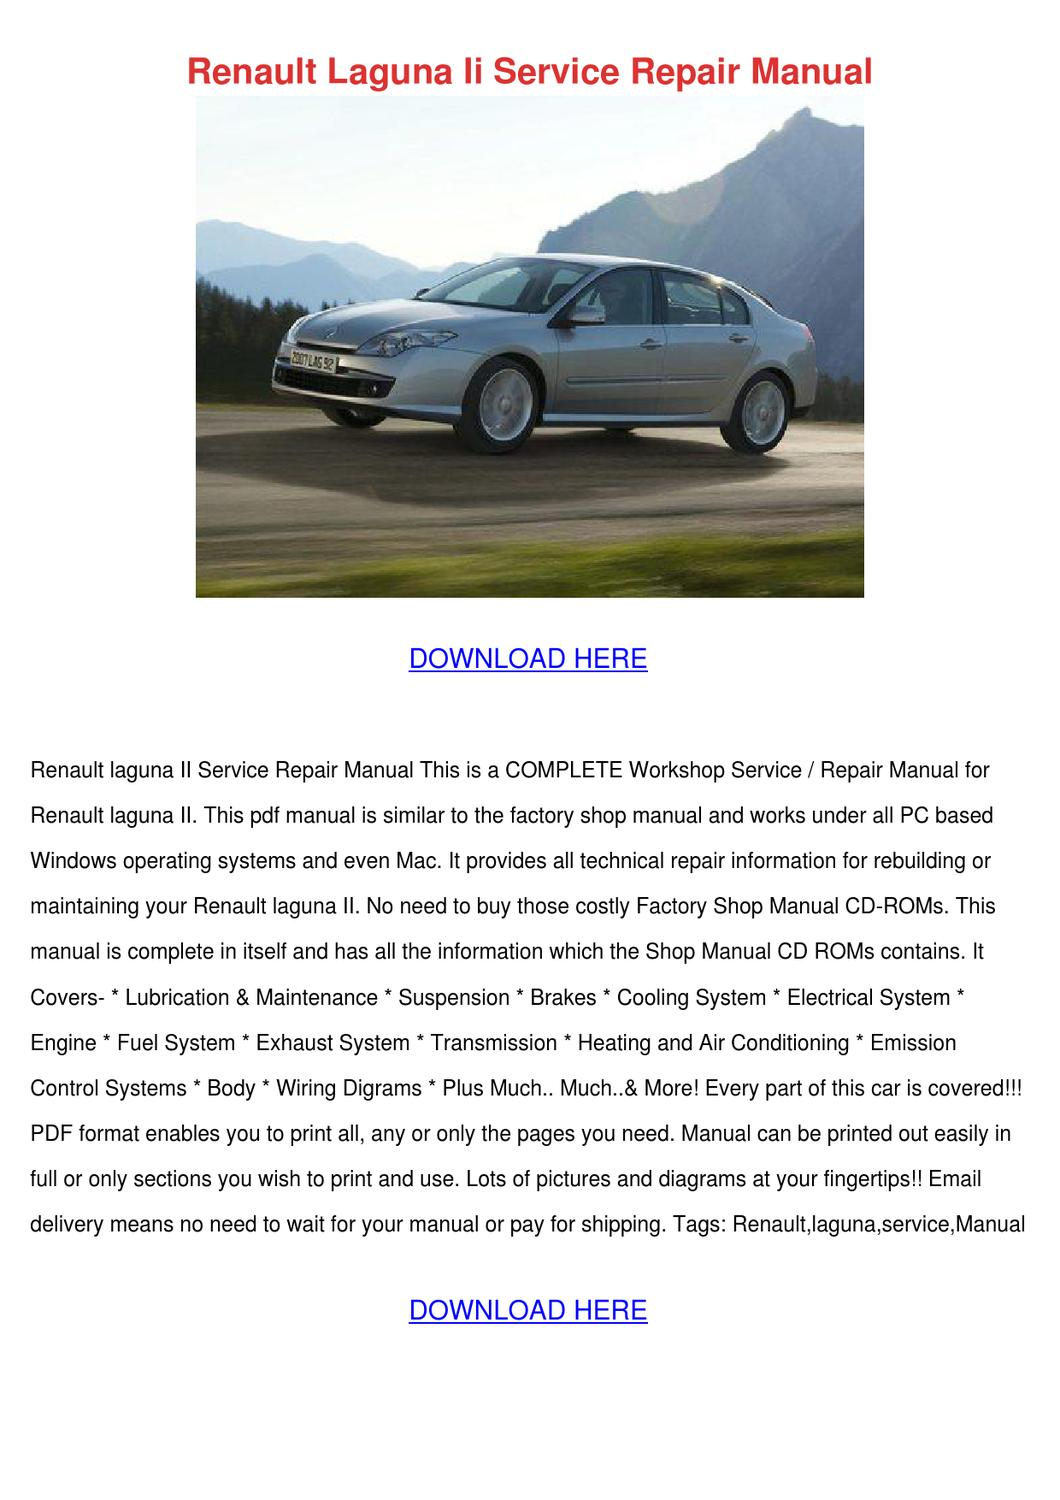 Renault Laguna Ii Service Repair Manual By Ashtonsnipes